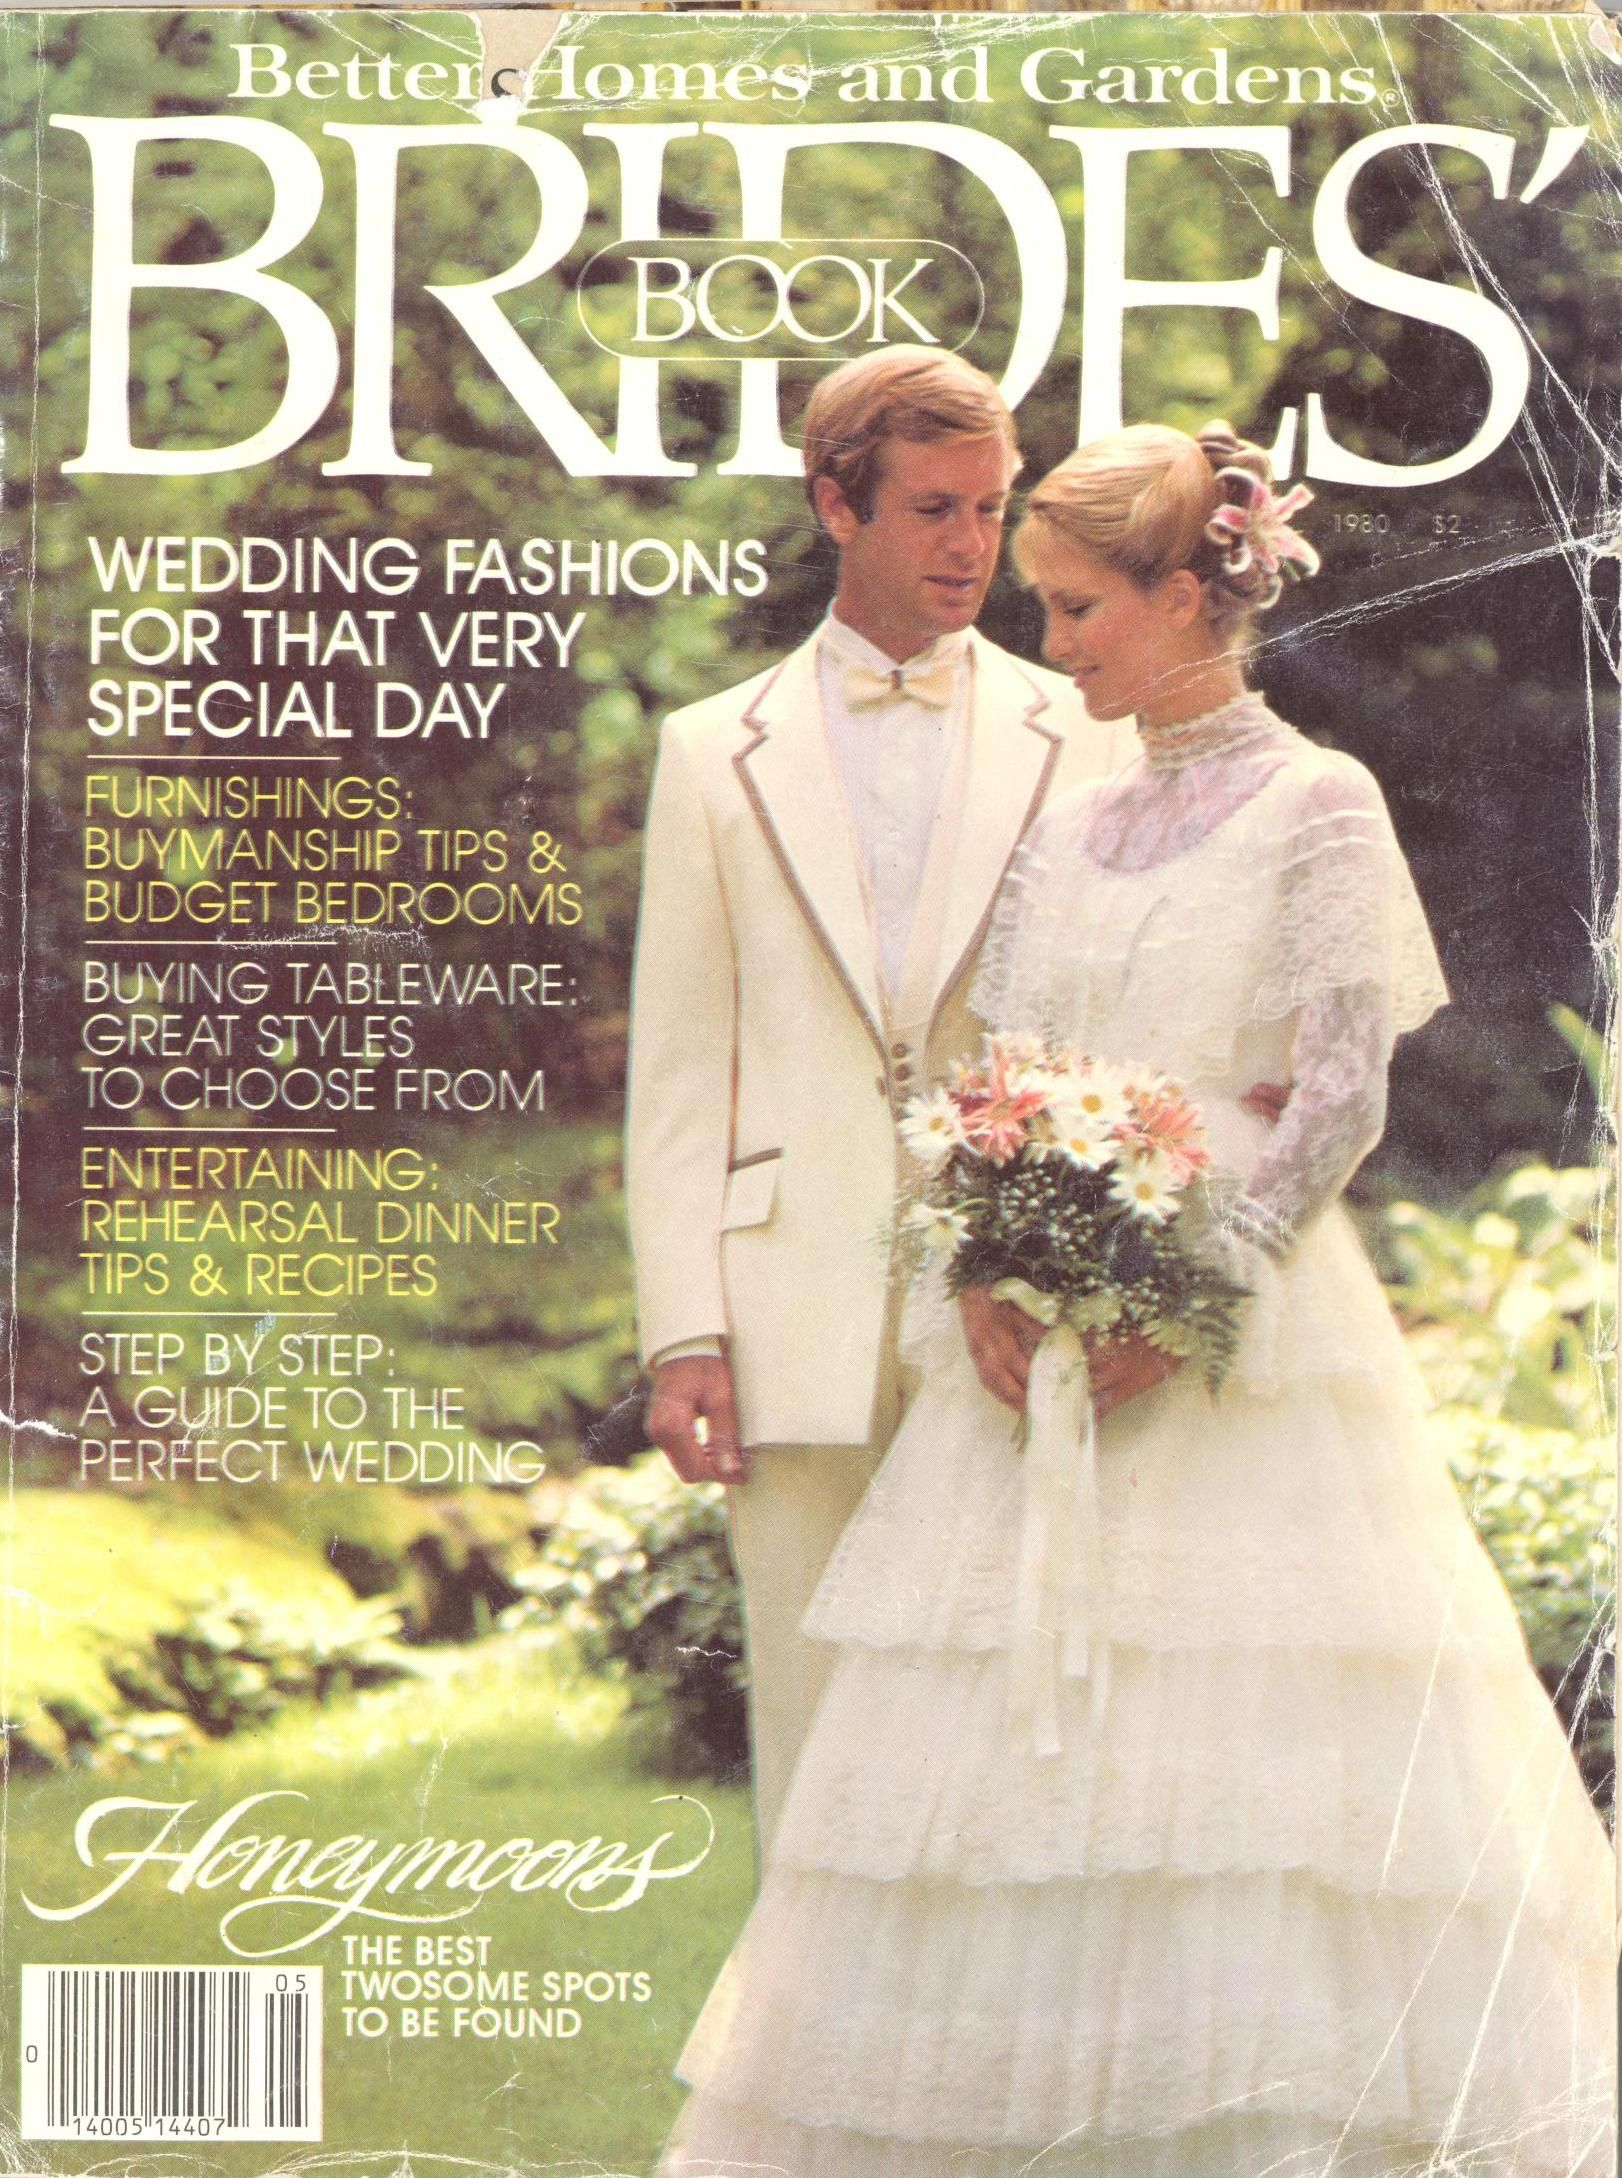 My wedding dress on the cover of a brides magazine in weddgs